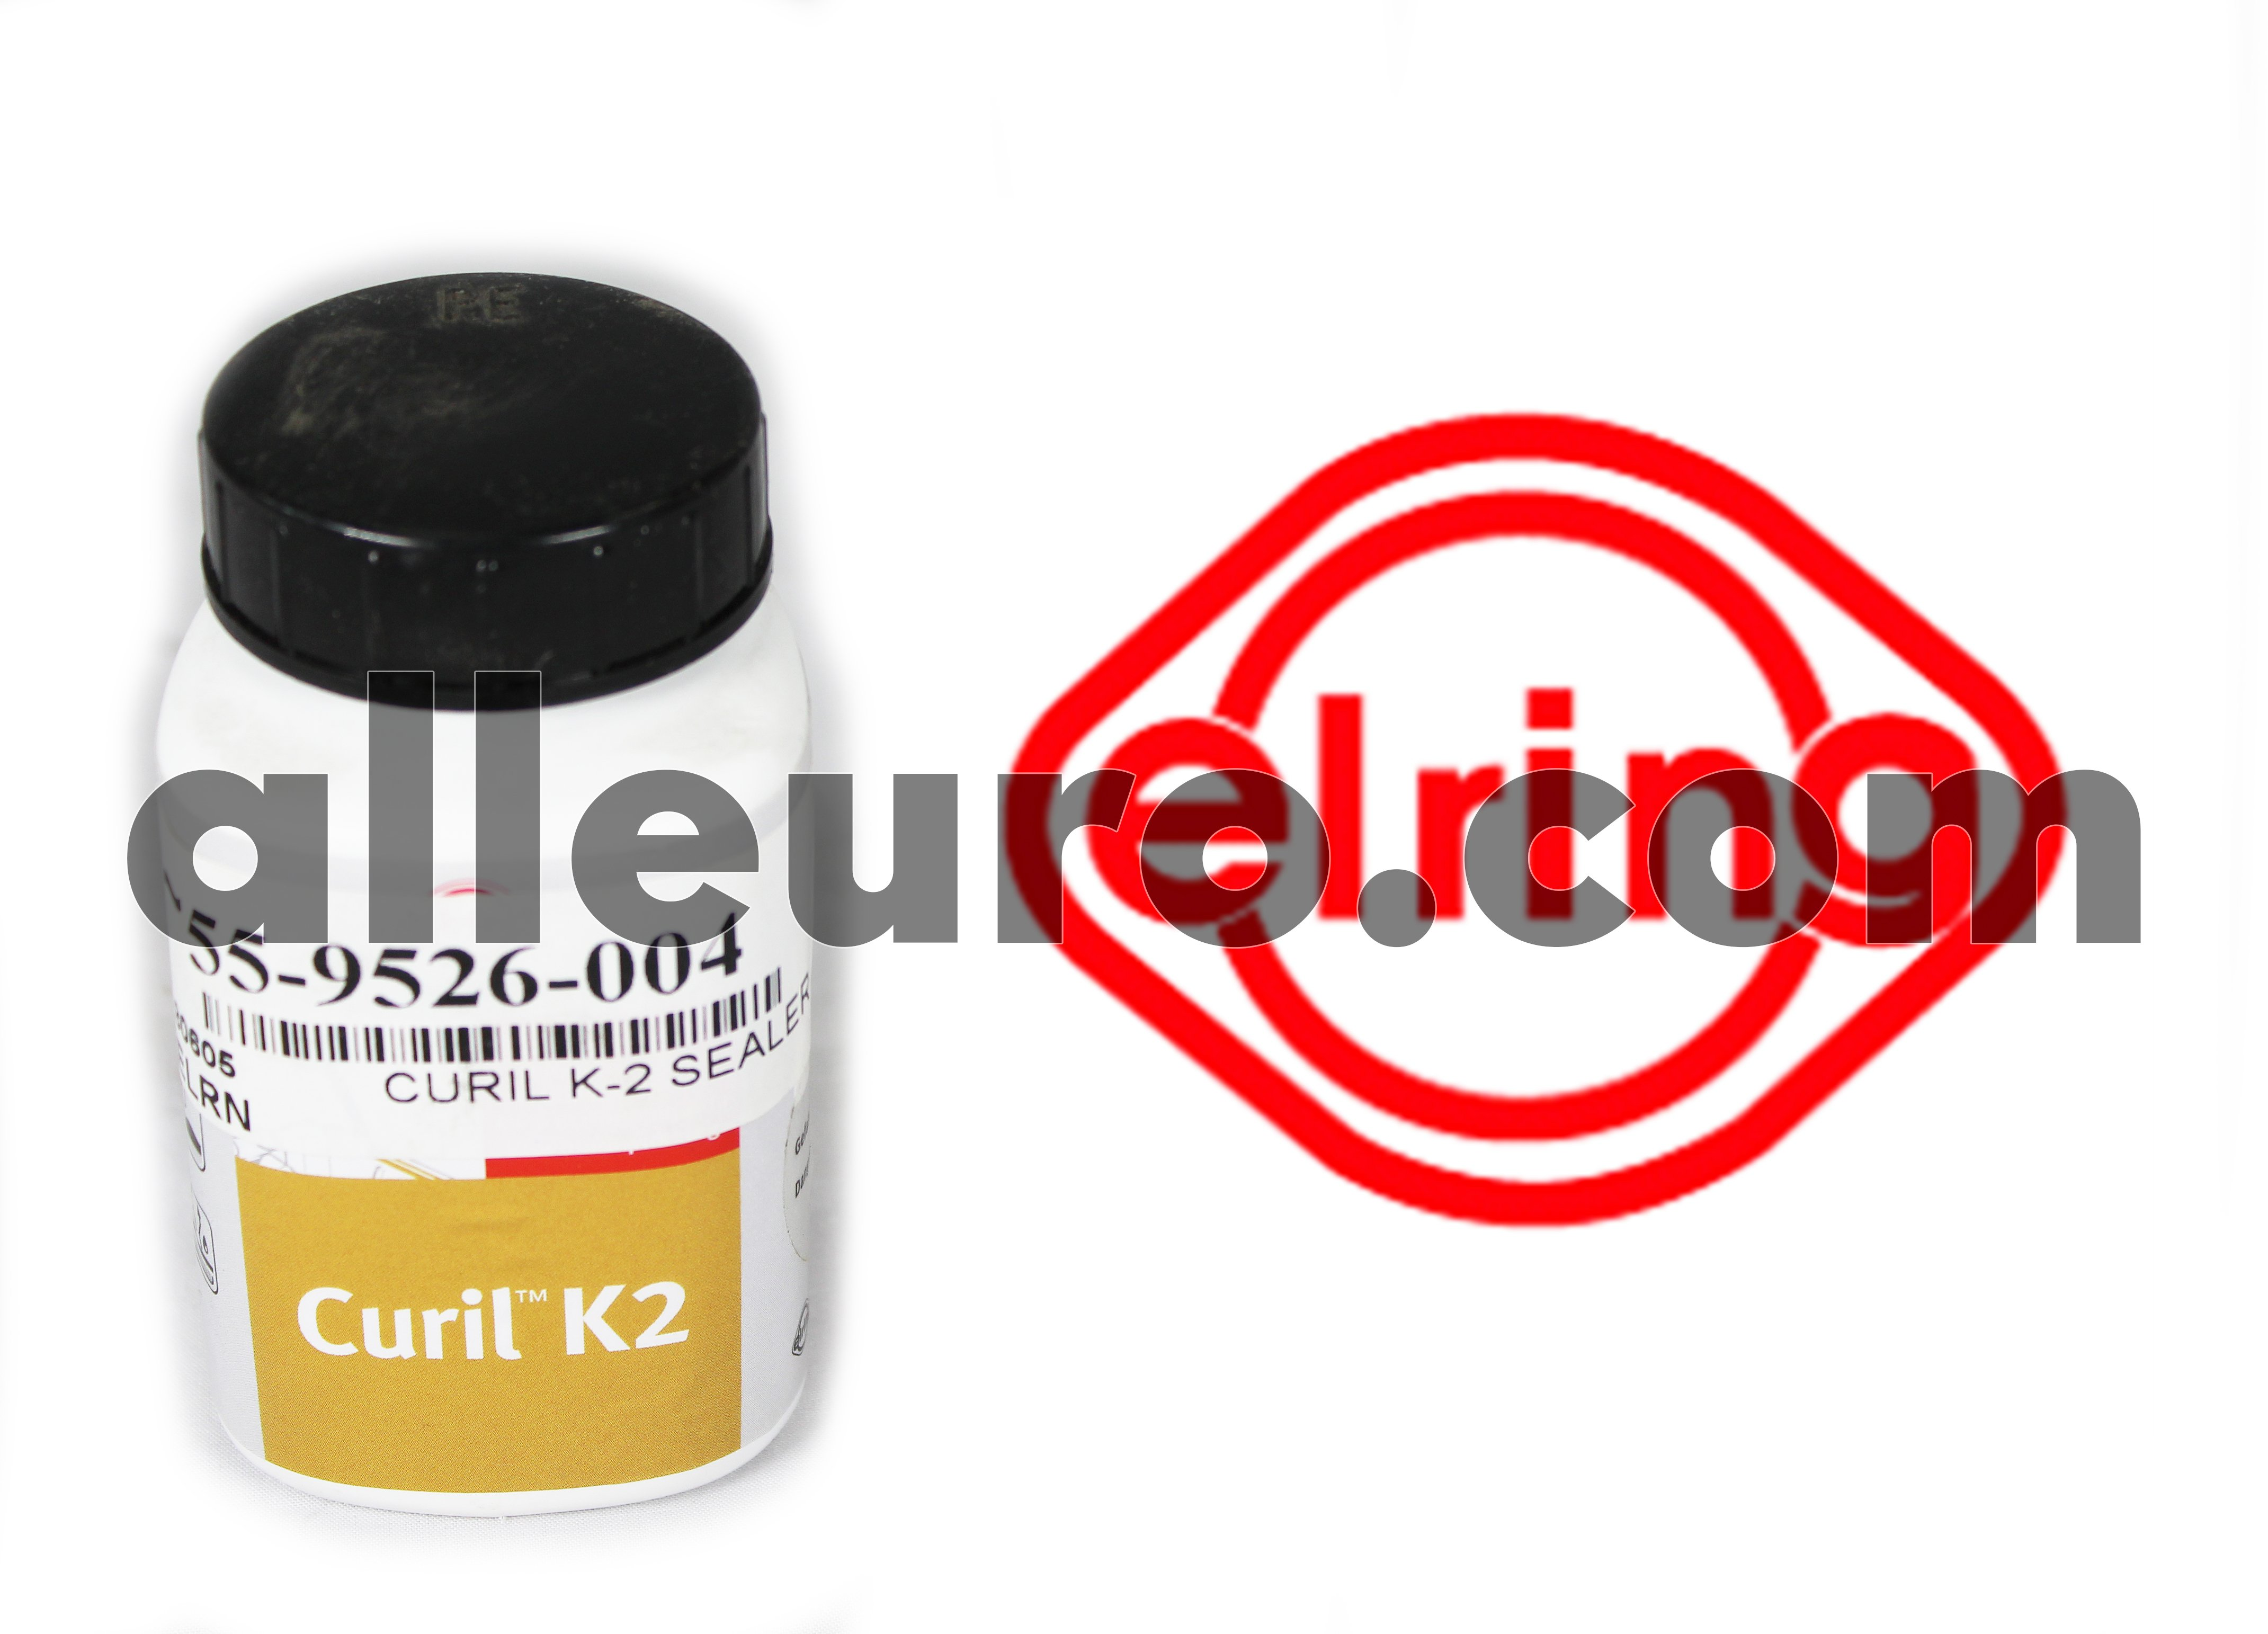 ElringKlinger Sealing Compound Sealant Silicon 55-9526-004 - CURIL K-2 SEALANT COMPOUND 125ml W/ Brush